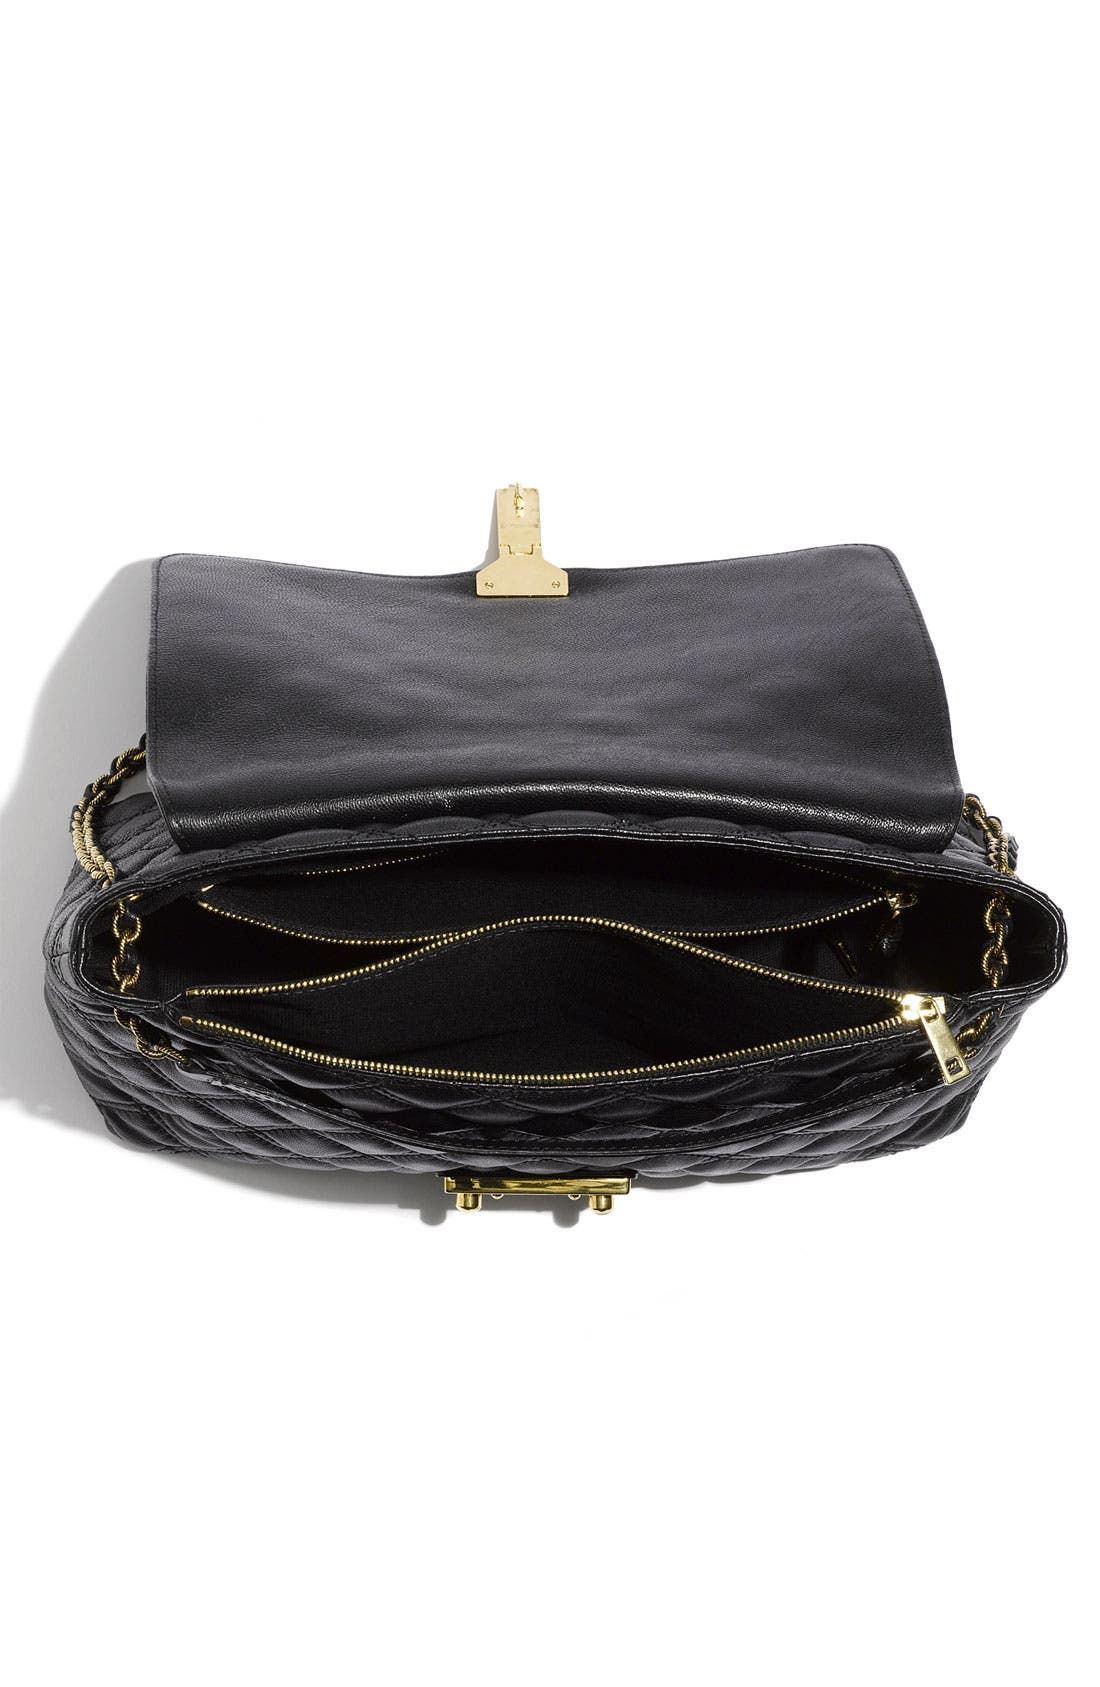 Alternate Image 3  - MARC JACOBS 'Baroque - Extra Large' Leather Shoulder Bag